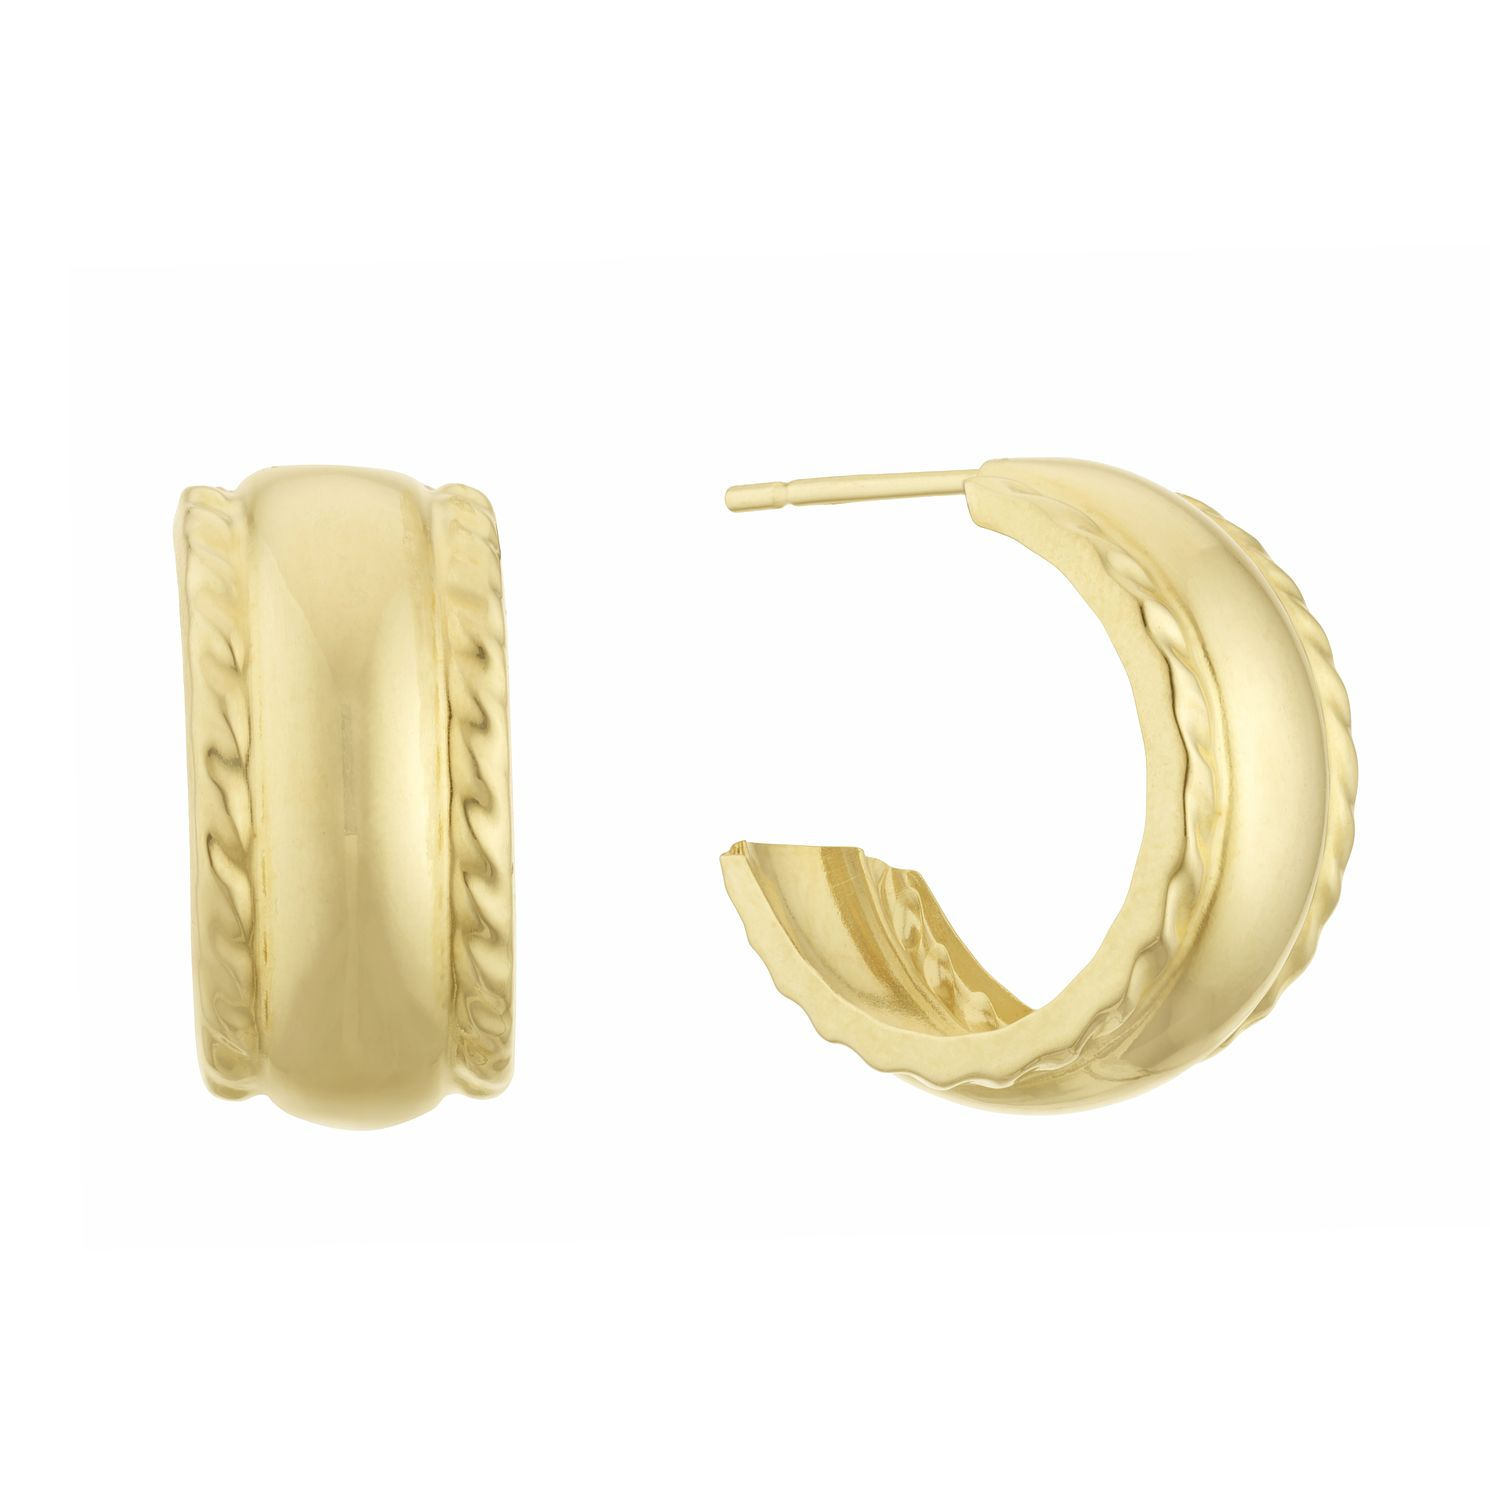 9ct Yellow Gold Twist Edges 13mm 3/4 Hoop Earrings - Product number 3133028